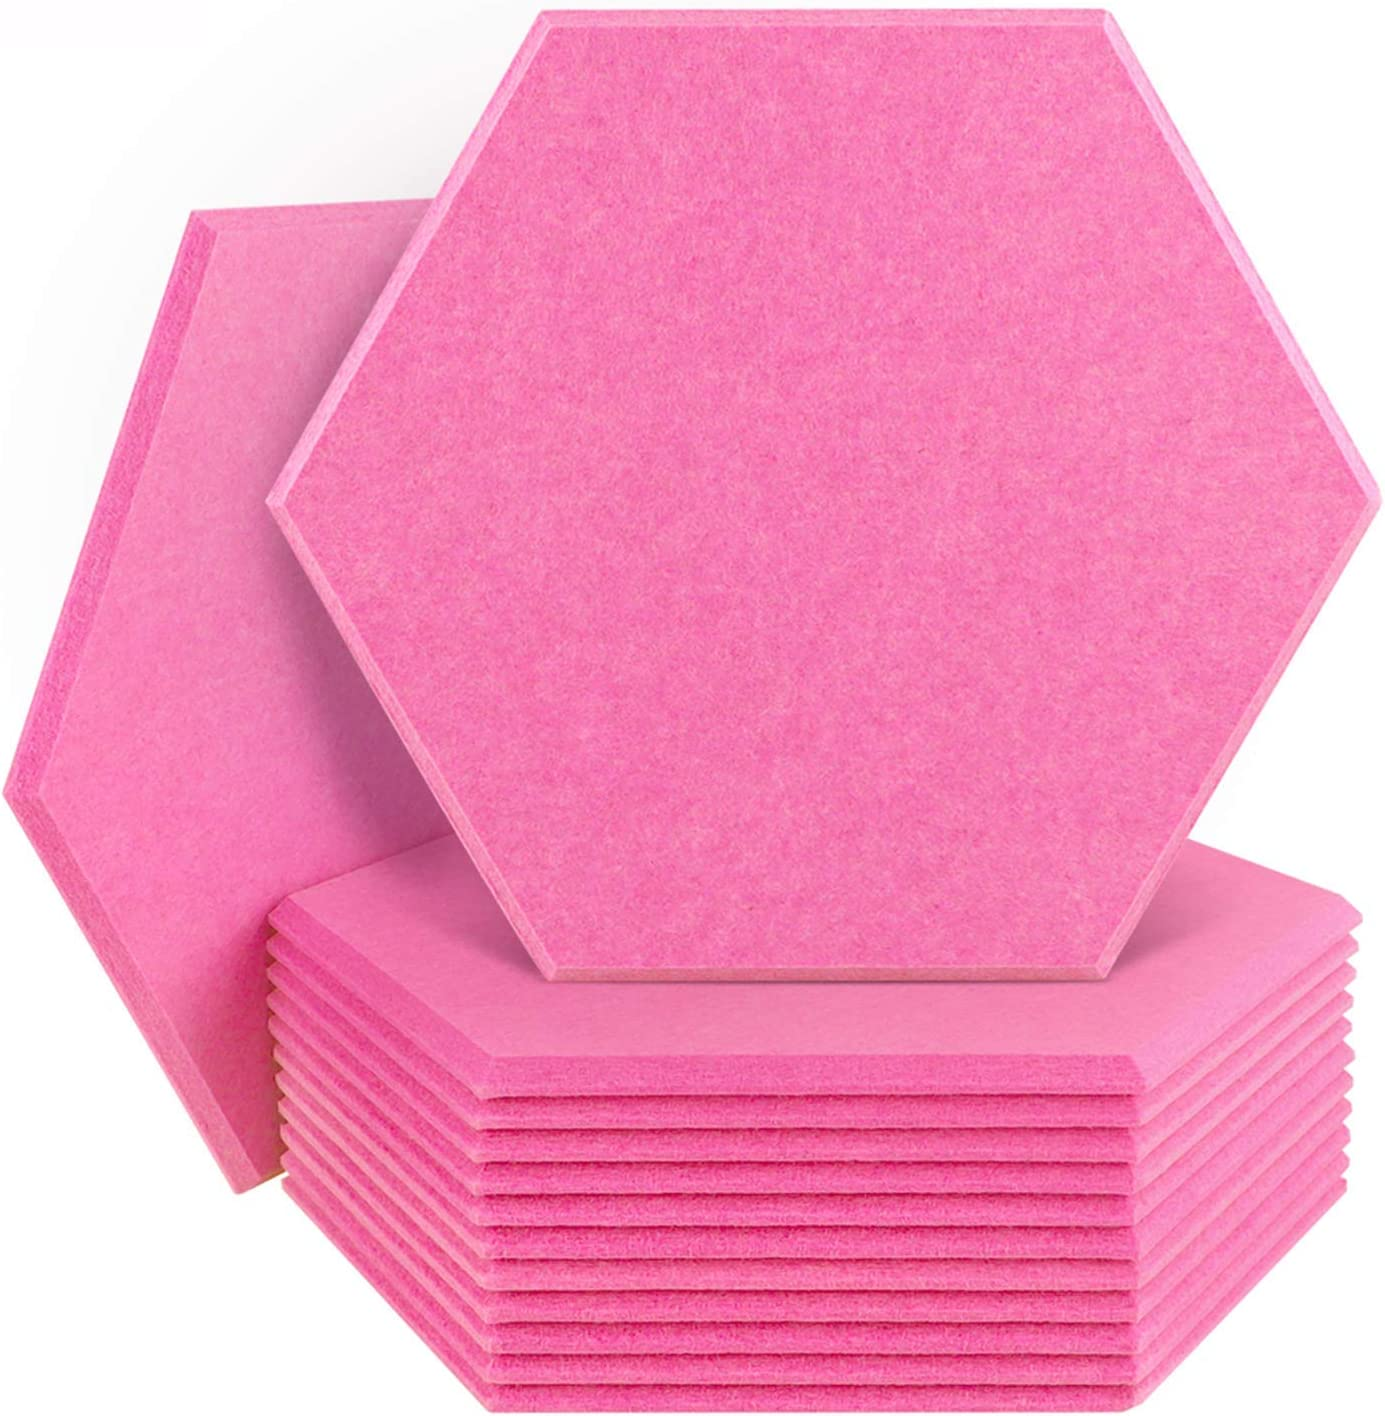 DEKIRU 12 Pack Acoustic Panels Sound Proof Padding, 14 X 13 X 0.4 Inches Sound dampening Panel Used in Home & Offices(Hexagon,Pink)